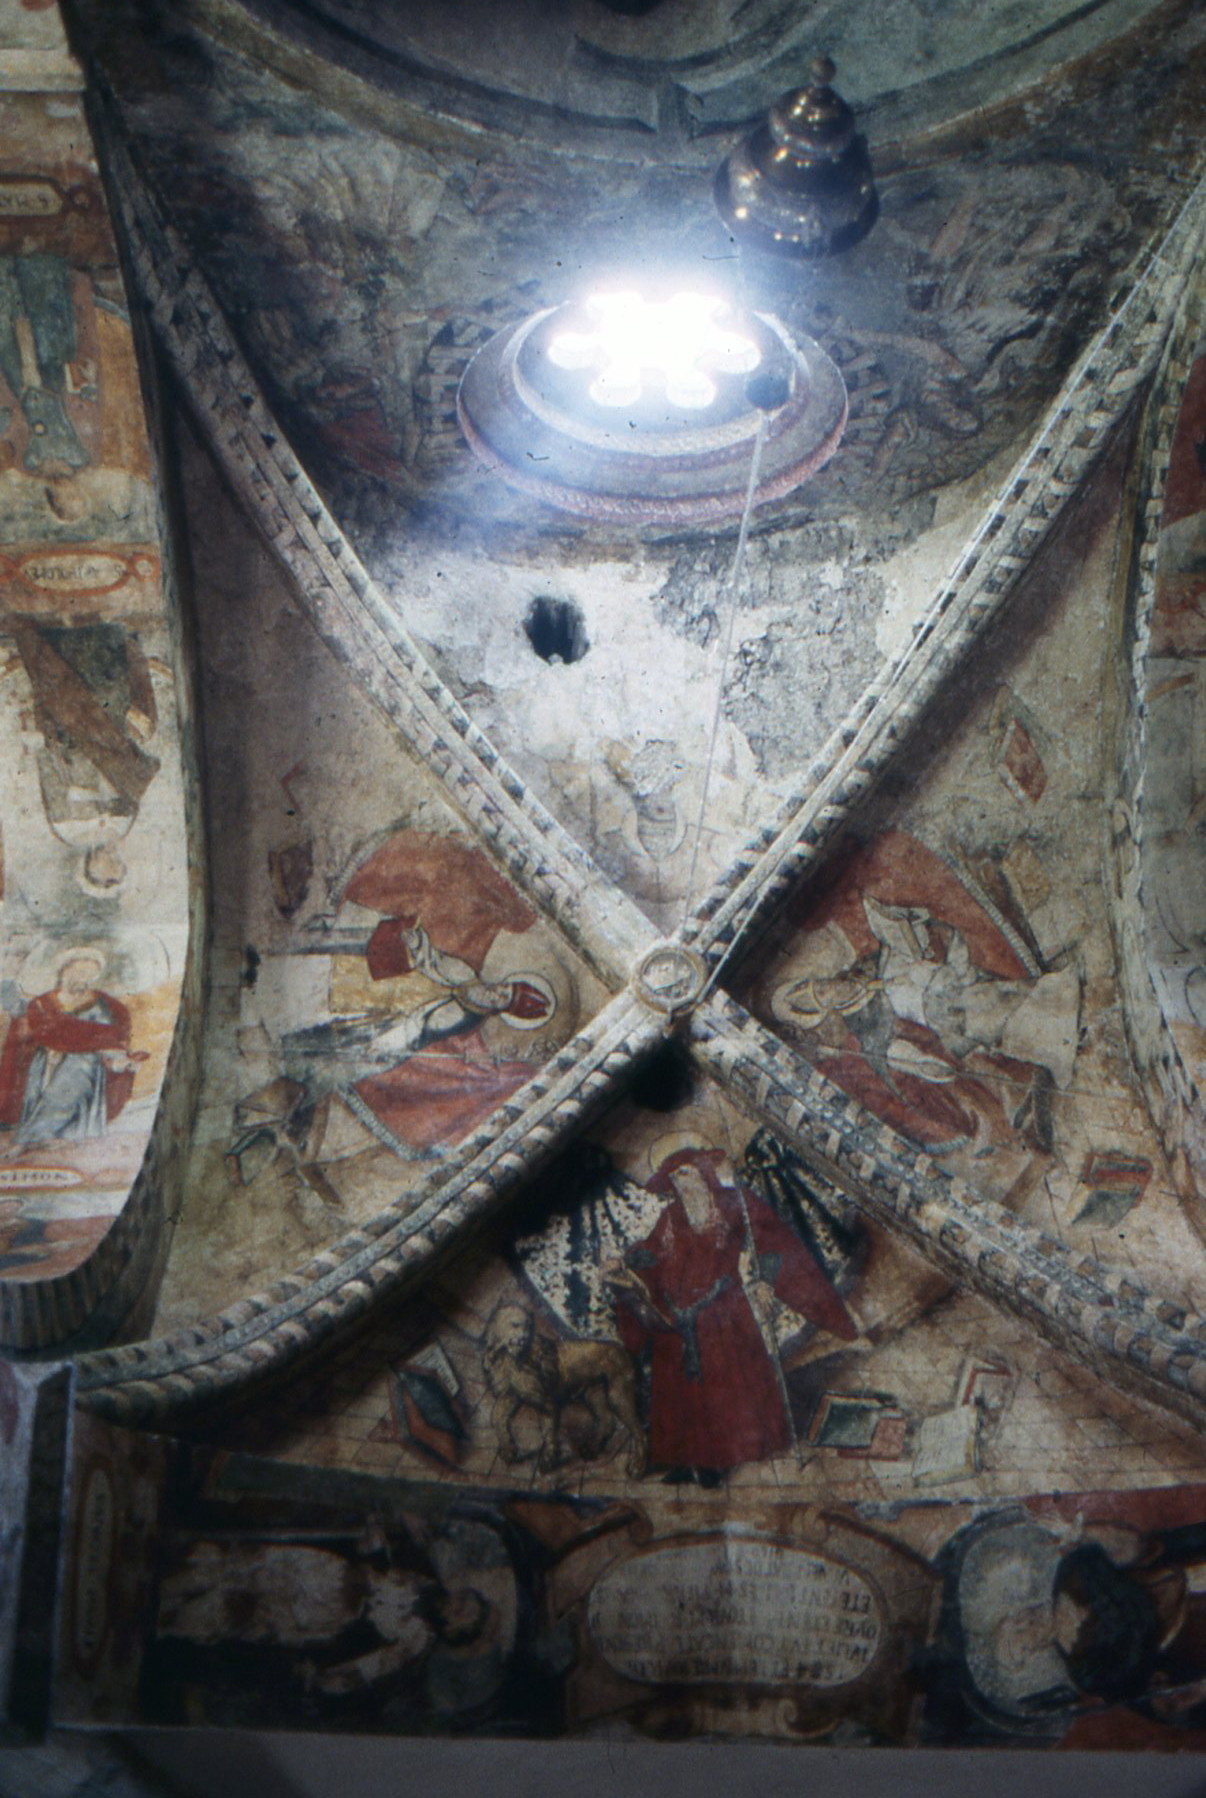 High in the mountains above Spain's remote Aran Valley sits this 16th century shrine with its stunning frescoed ceiling.